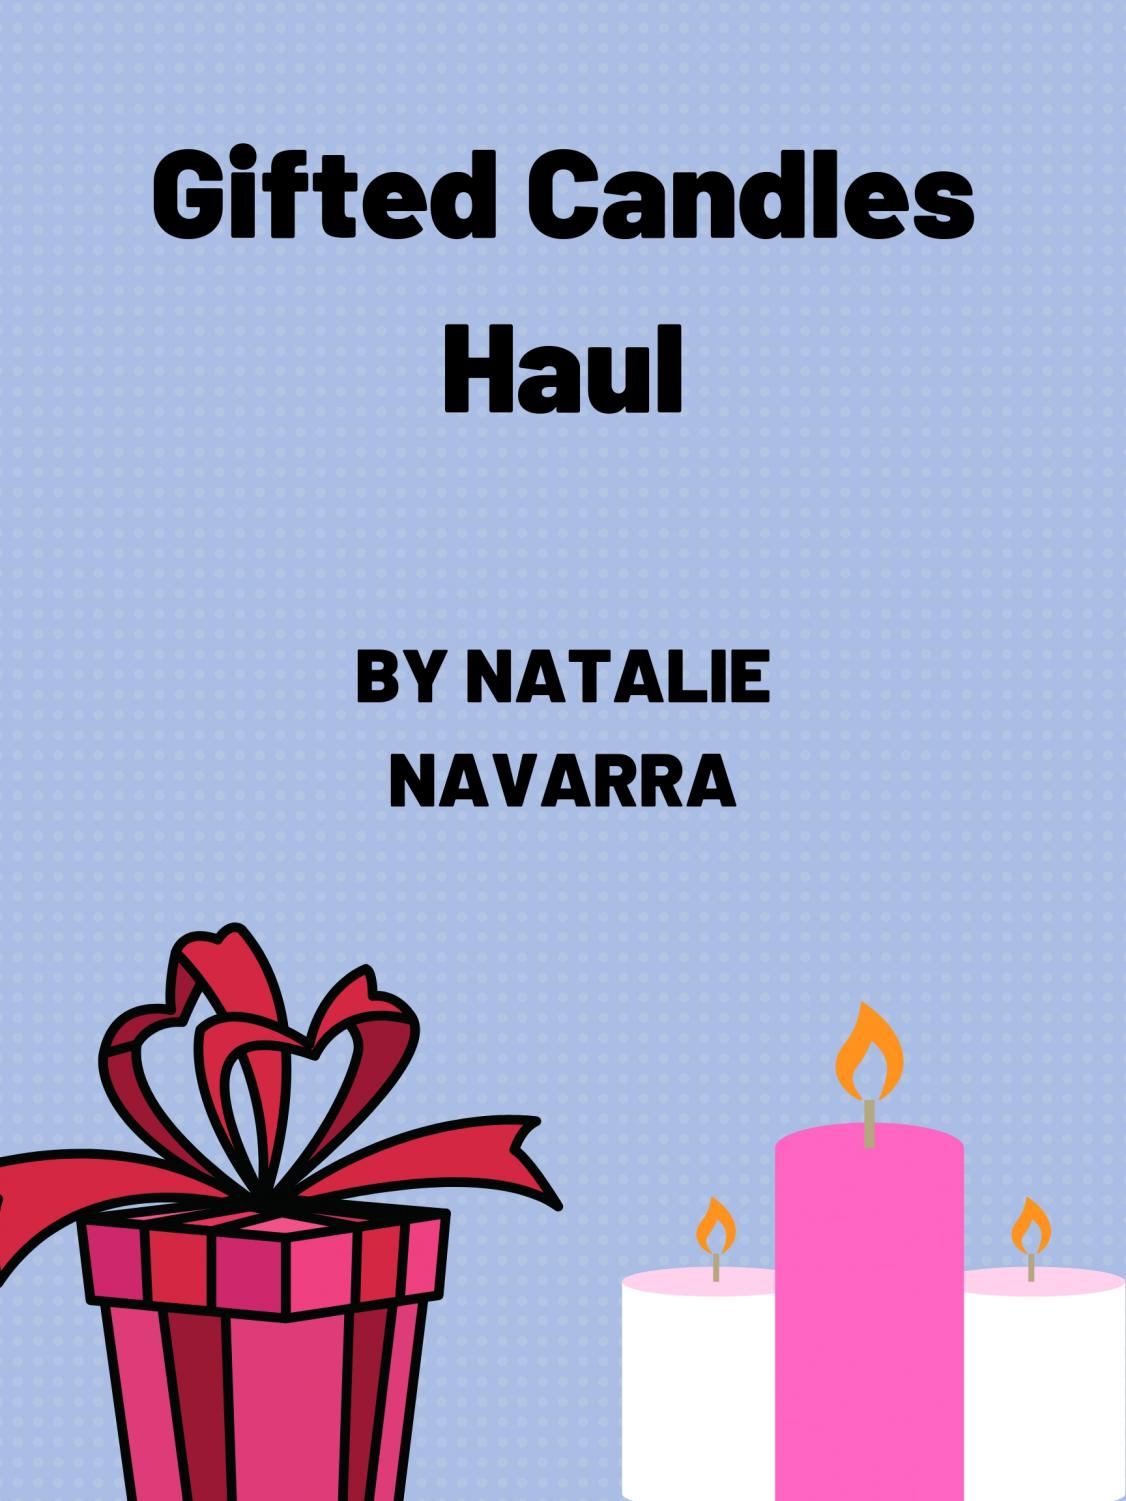 Graphic Candle: Natalie Navarra